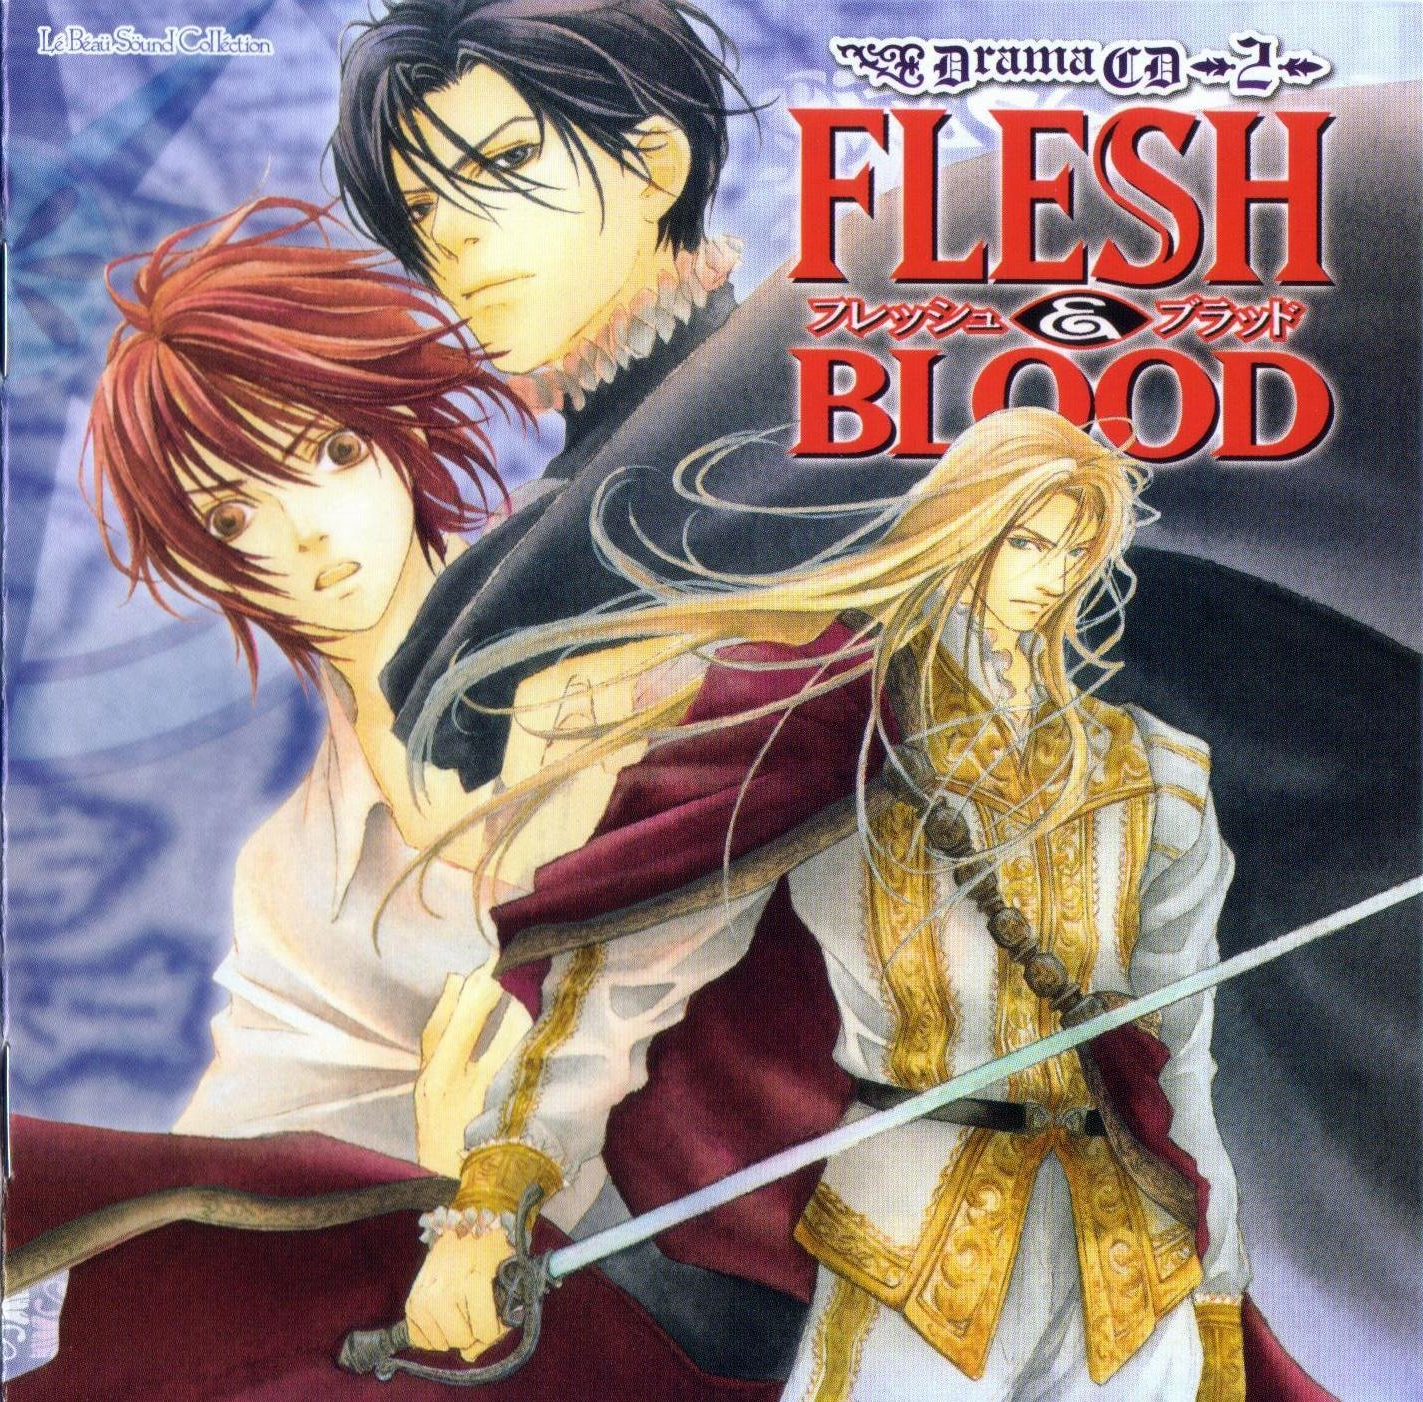 FLESH & BLOOD 02 (1)